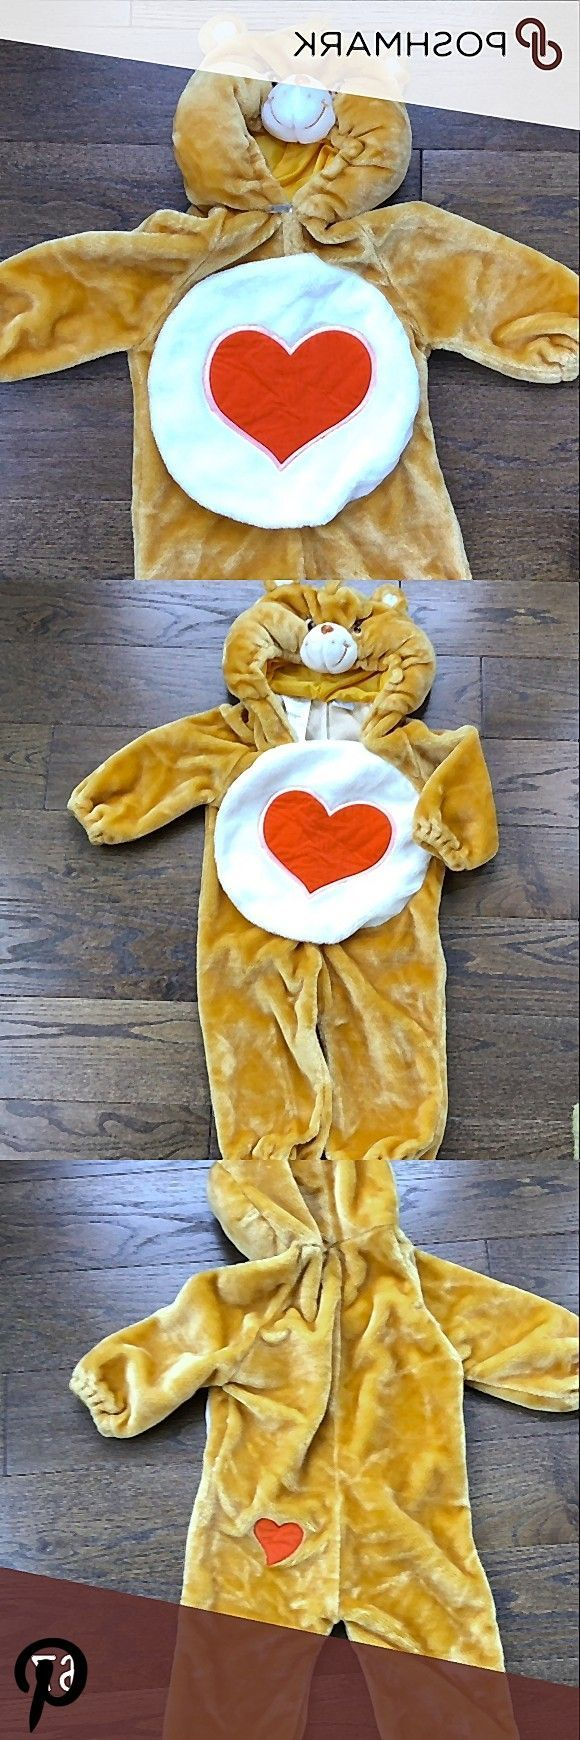 Cute Care Bears Halloween costume!! 2-4 years Excellent condition, worn once. Size 1-2 in Halloween #carebearcostume #carebearcostume Cute Care Bears Halloween costume!! 2-4 years Excellent condition, worn once. Size 1-2 in Halloween costume.  From shoulder to ankle meas… #carebearcostume Cute Care Bears Halloween costume!! 2-4 years Excellent condition, worn once. Size 1-2 in Halloween #carebearcostume #carebearcostume Cute Care Bears Halloween costume!! 2-4 years Excellent condition, worn on #carebearcostume